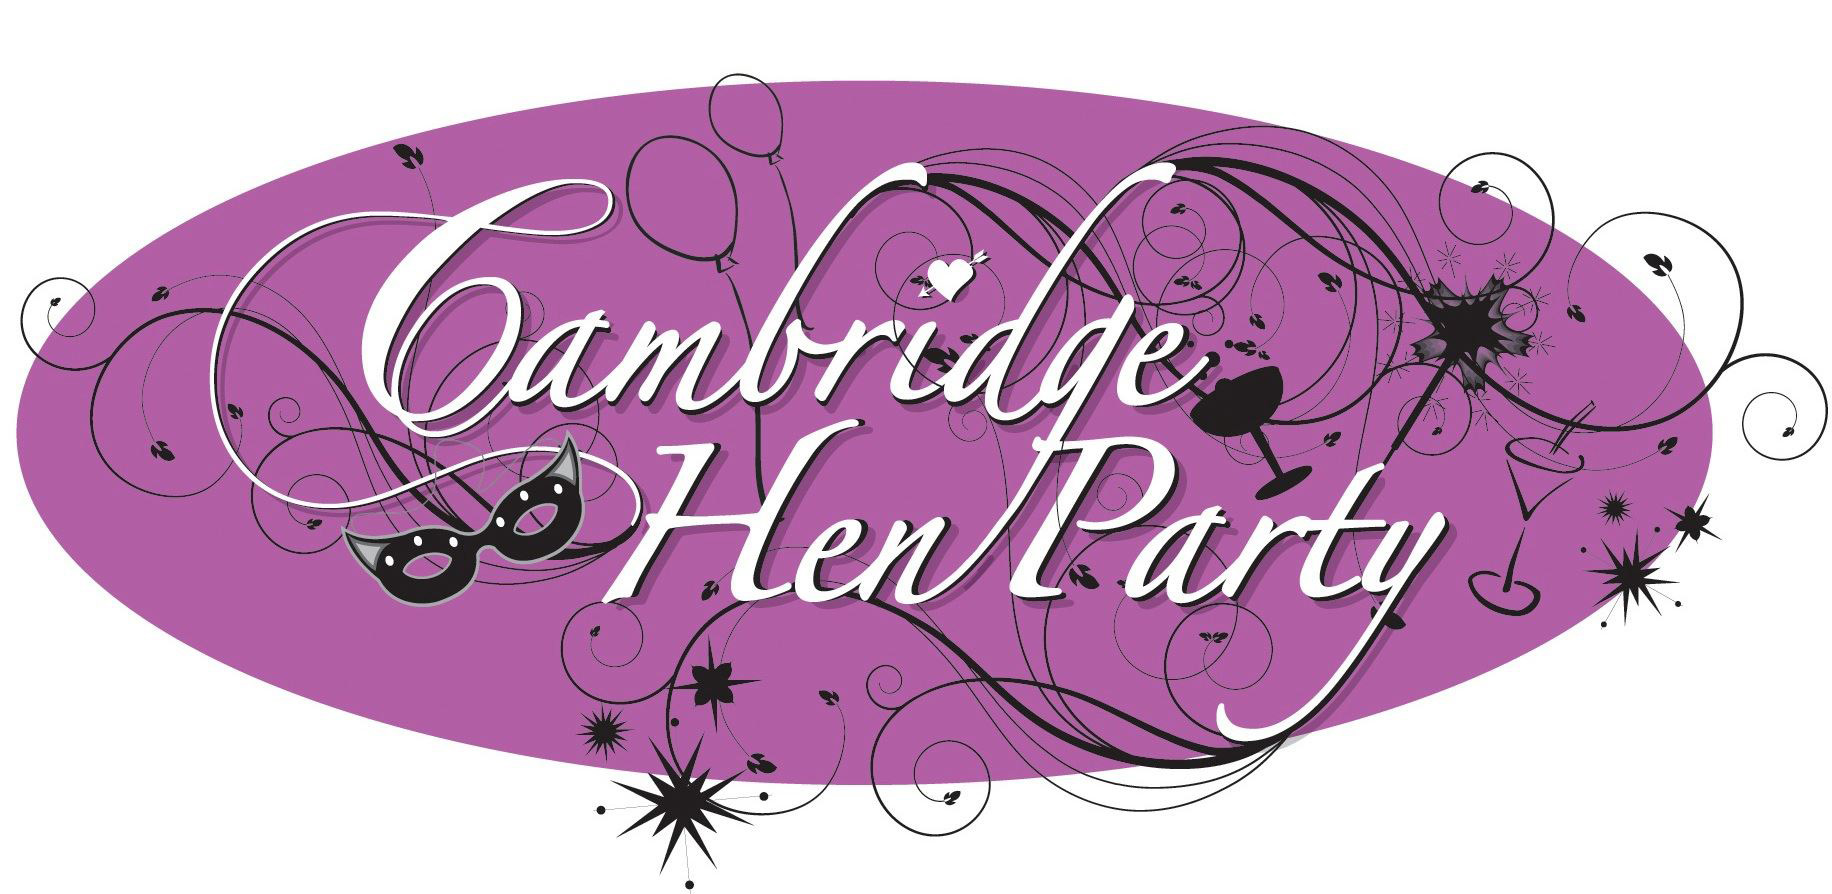 Cambridge Hen Party Logo